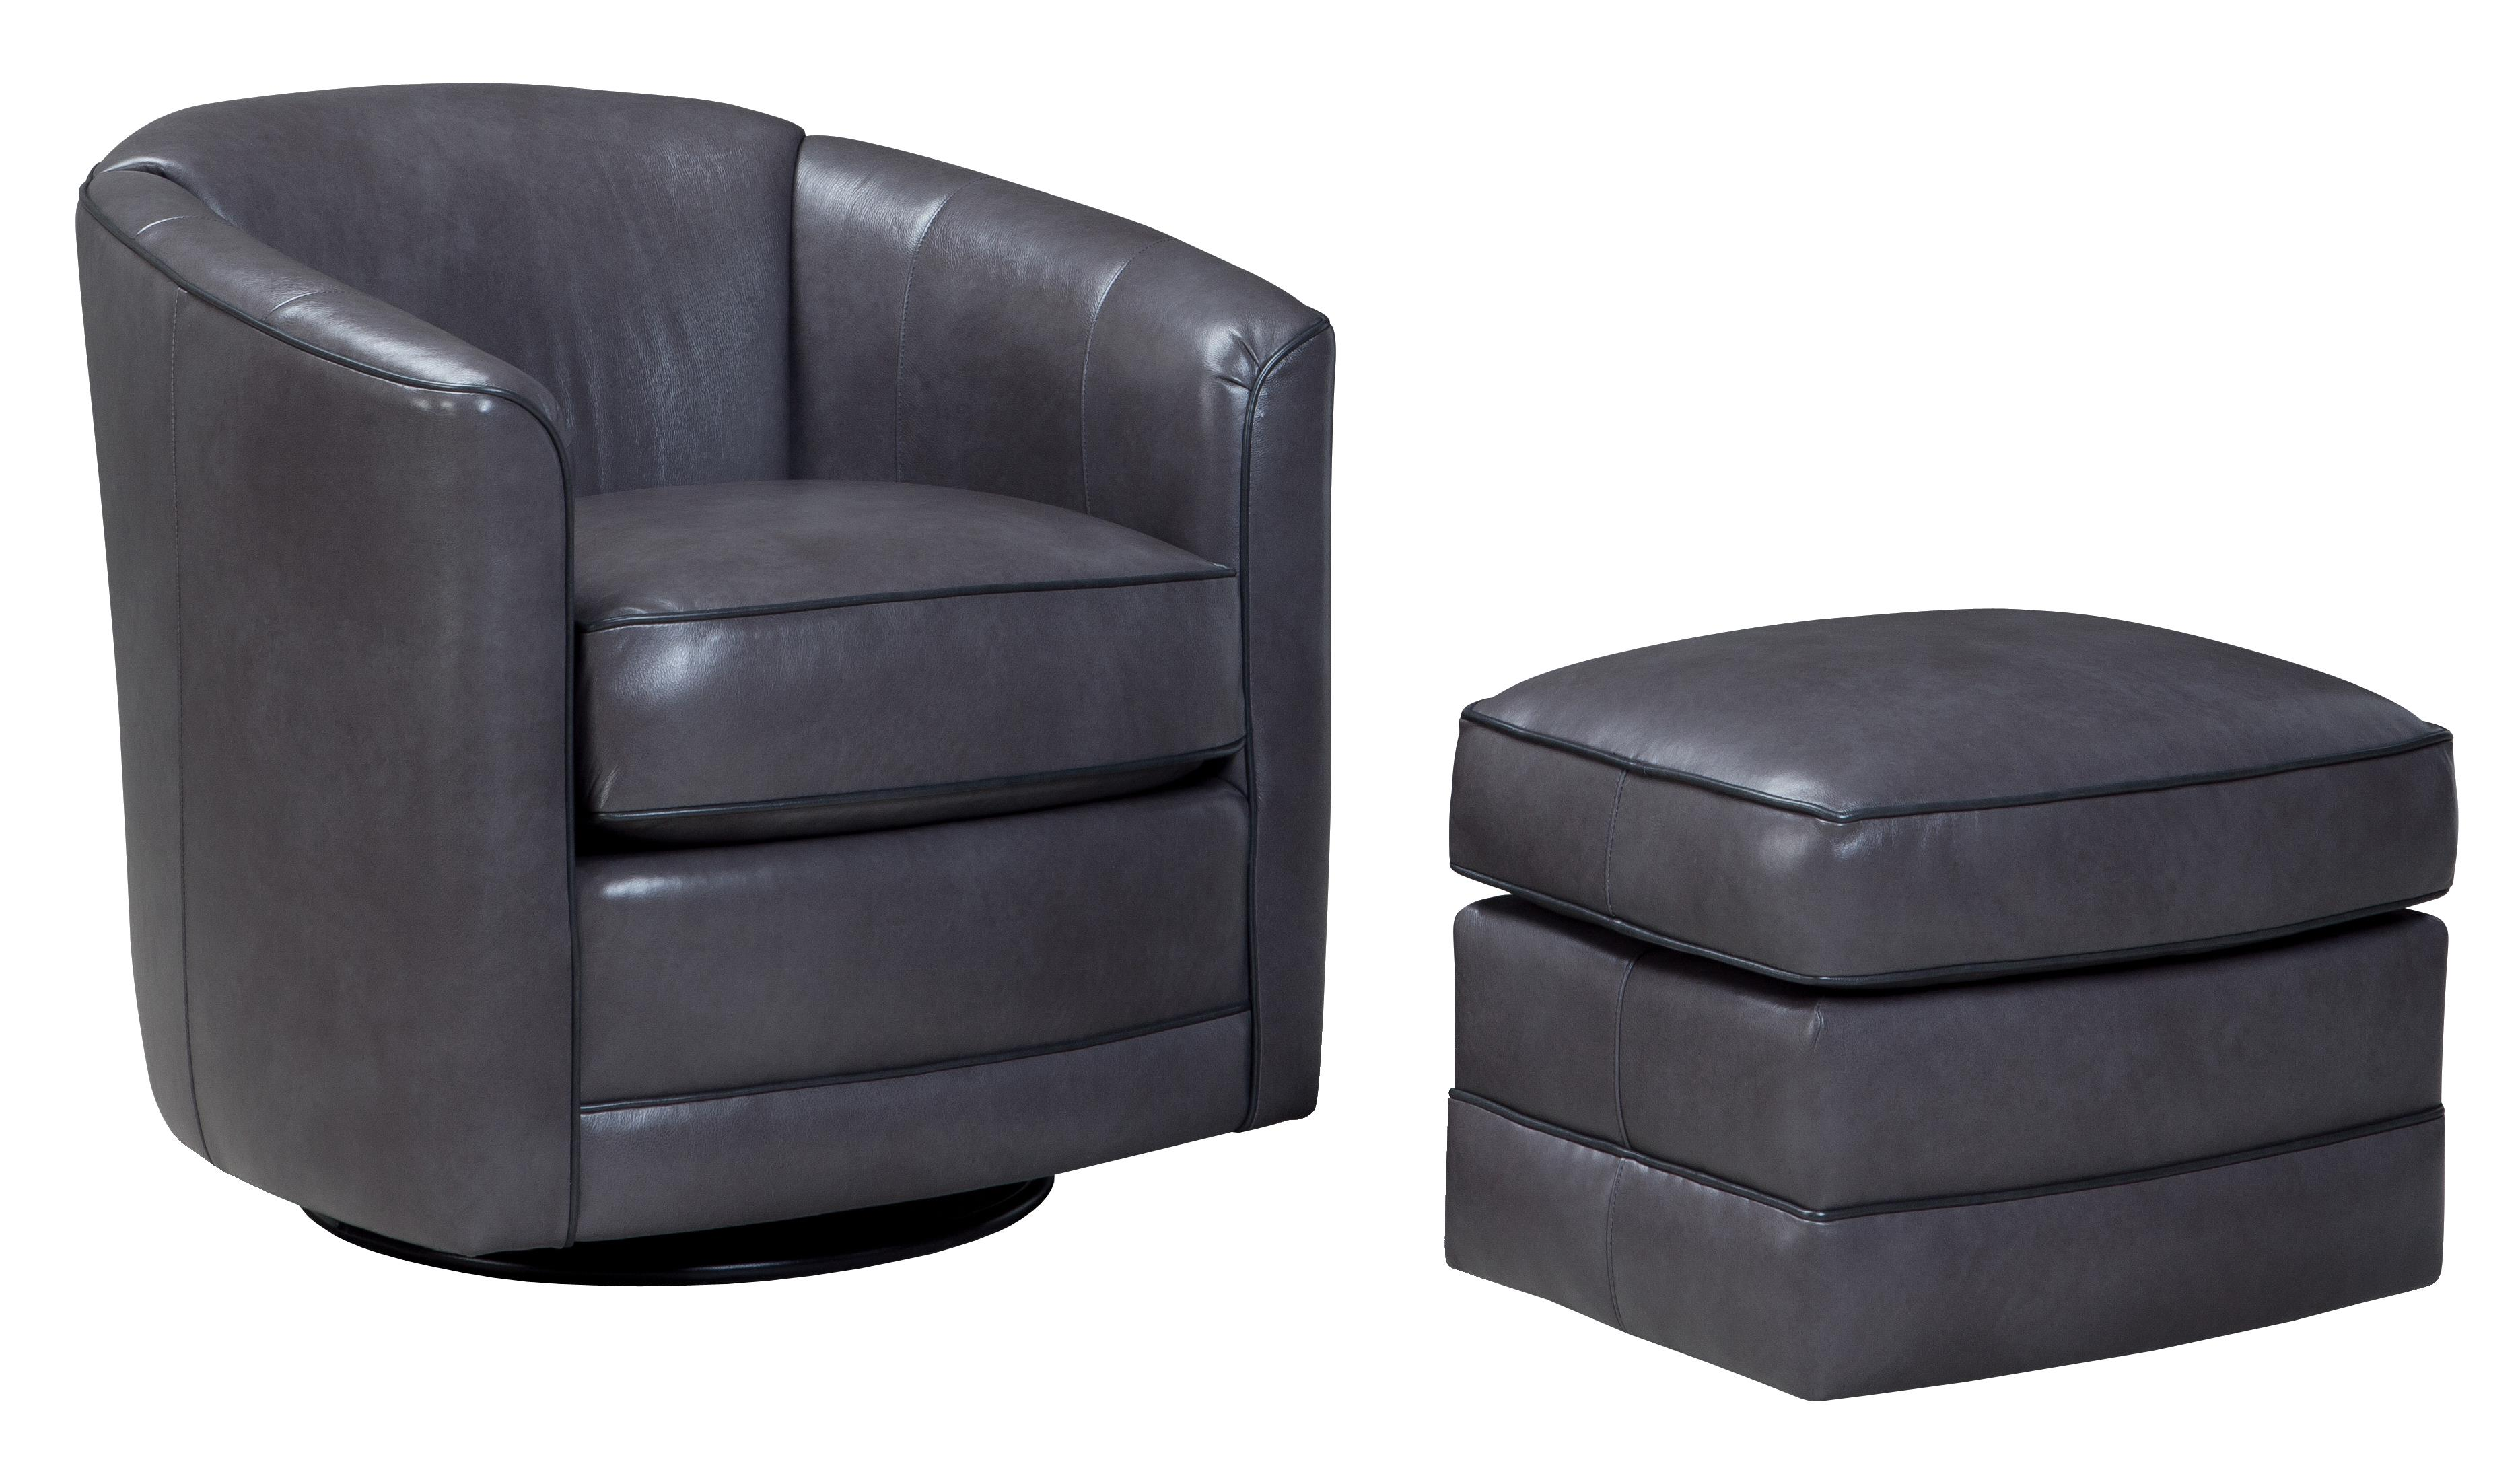 506 Swivel Glider Chair and Ottoman Set by Smith Brothers at Saugerties Furniture Mart